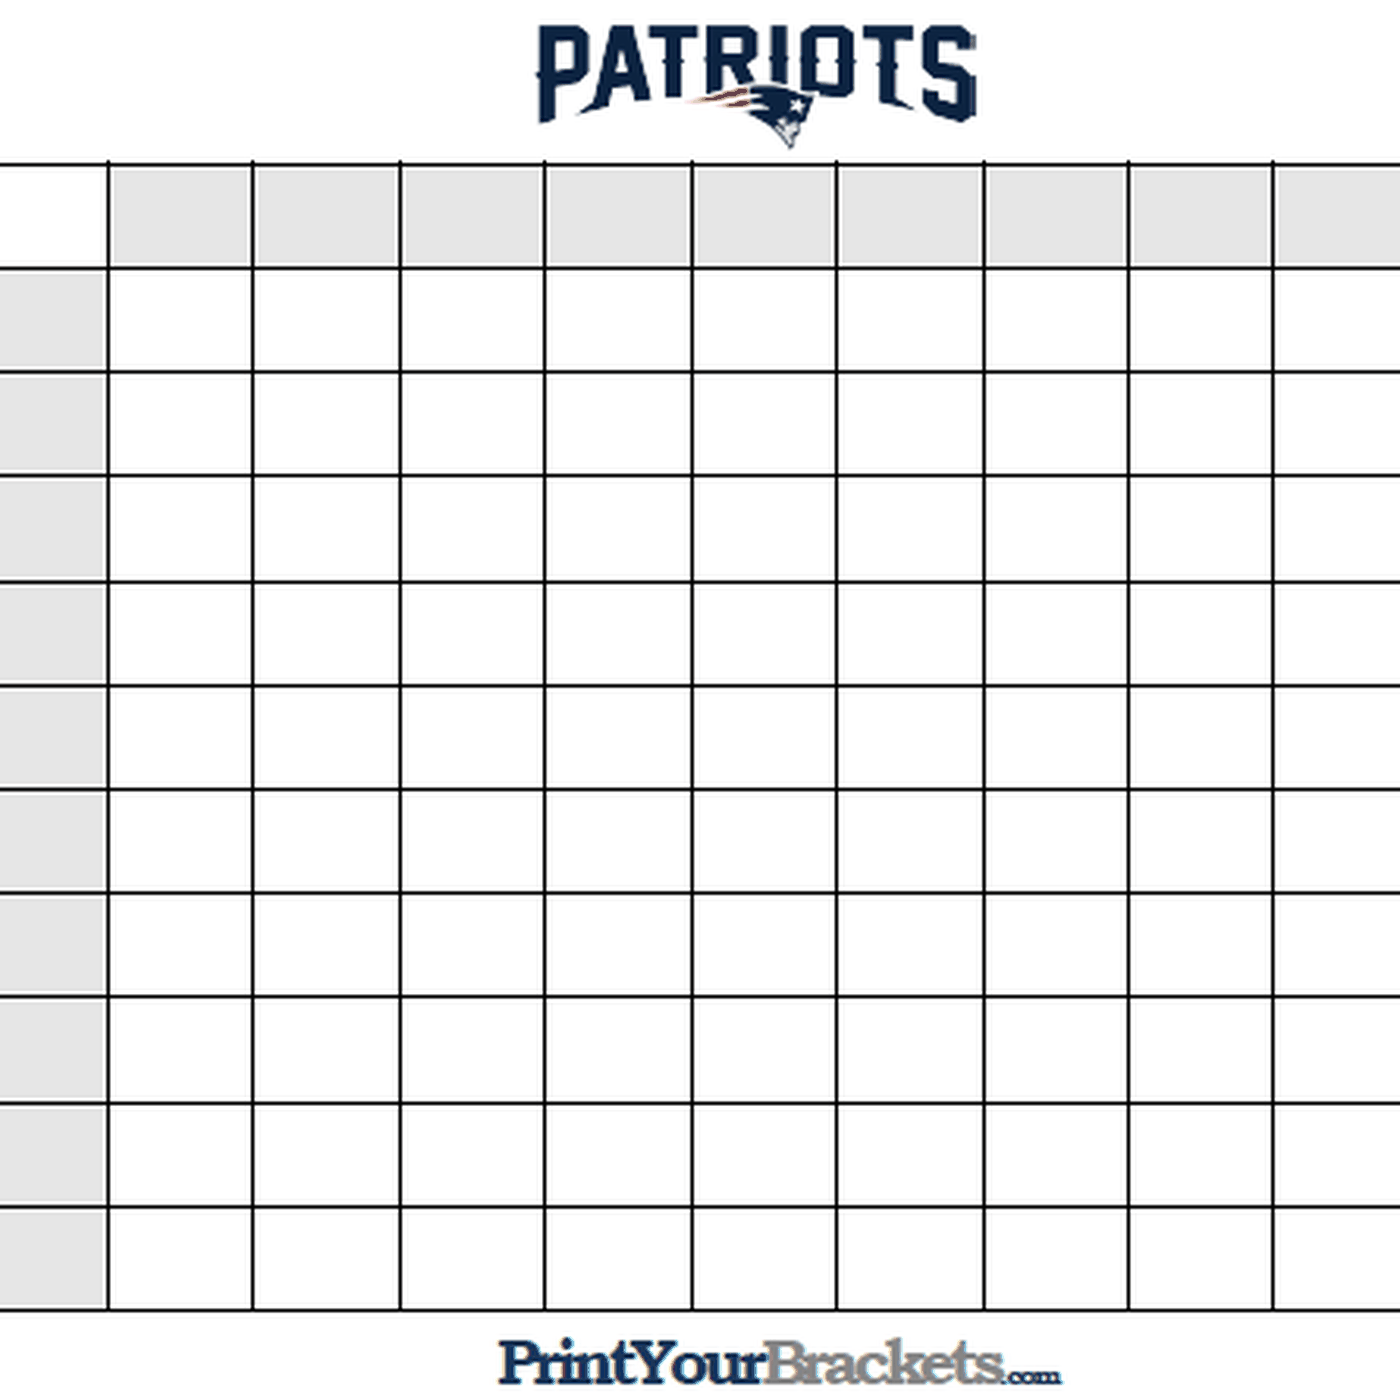 Super bowl squares template how to play online and more super bowl squares template how to play online and more sbnation alramifo Images